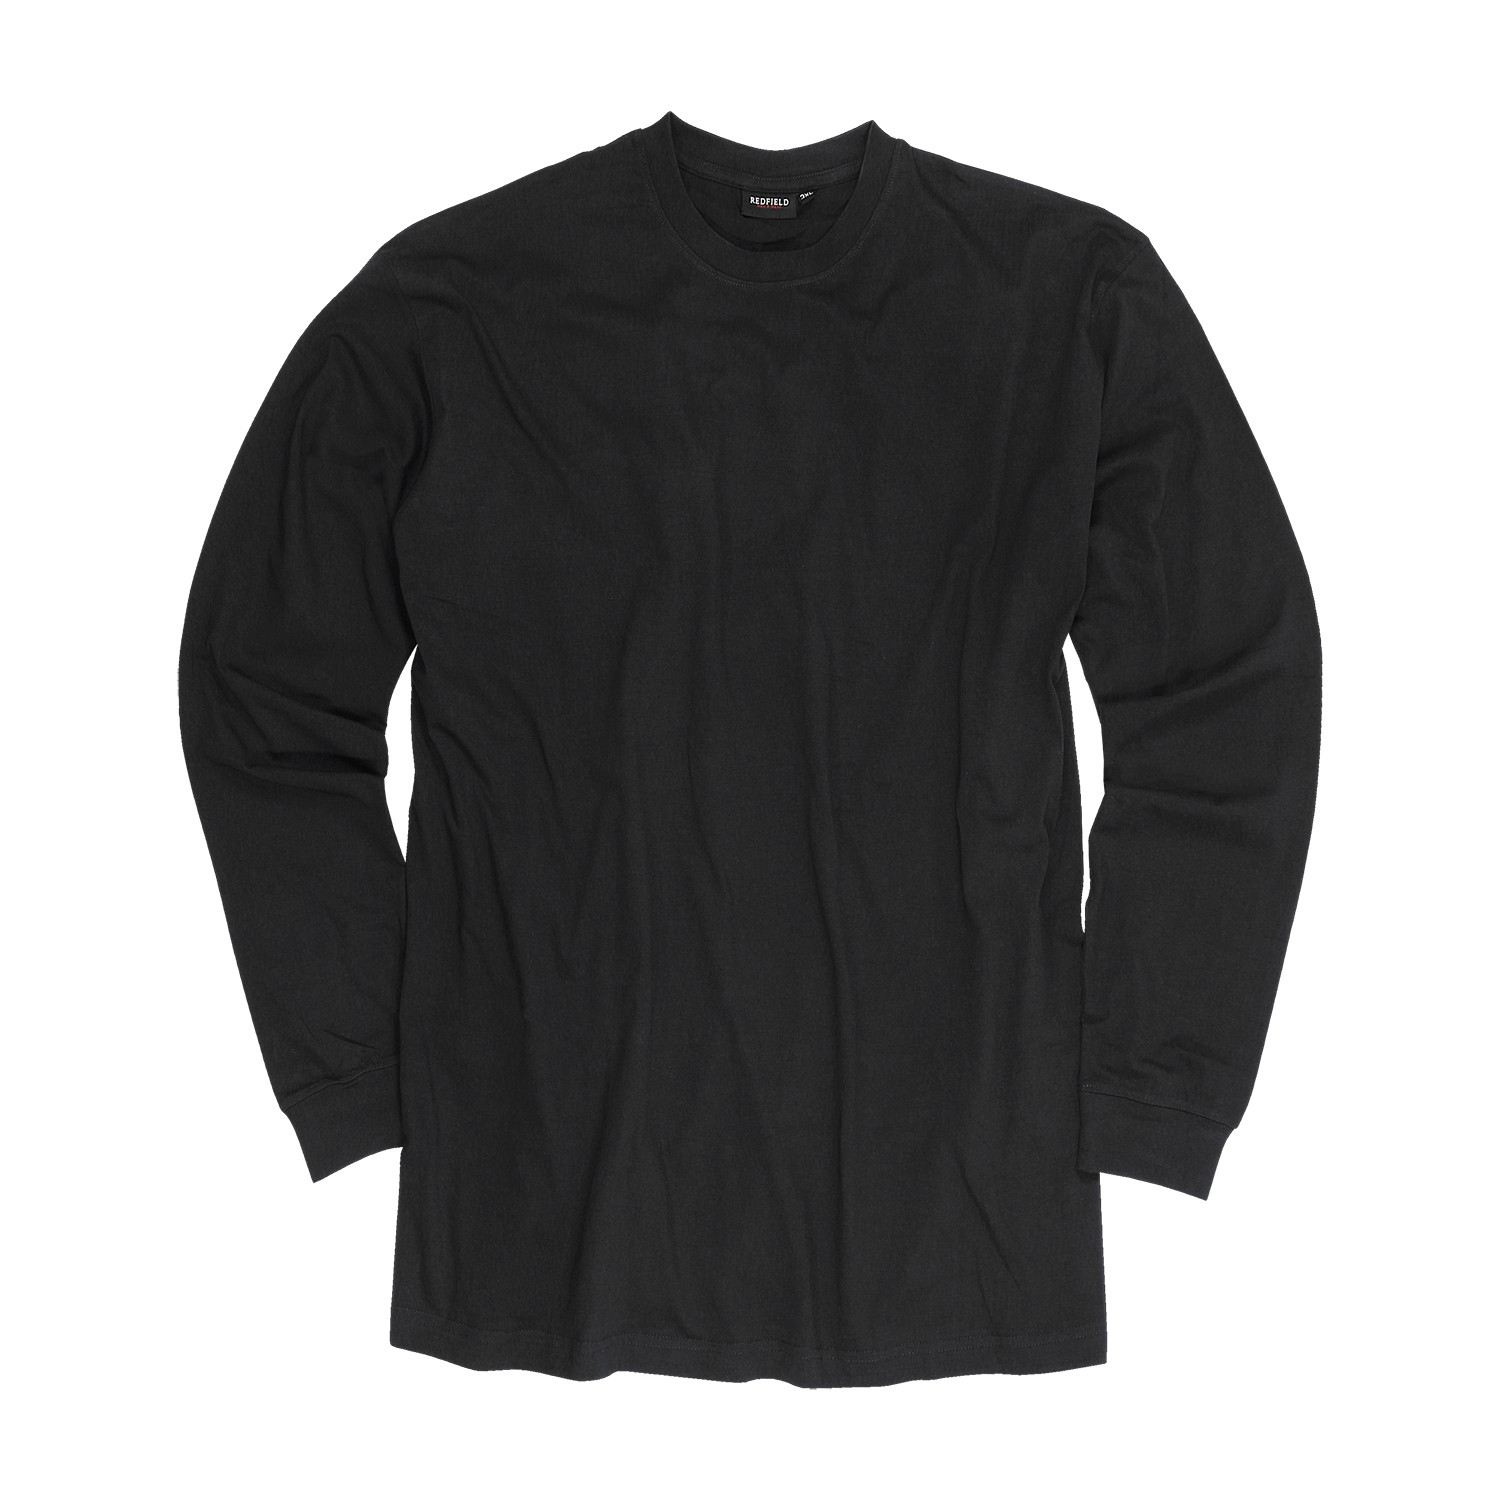 Detail Image to Black sweatshirt by Redfield in plus sizes up to 8XL